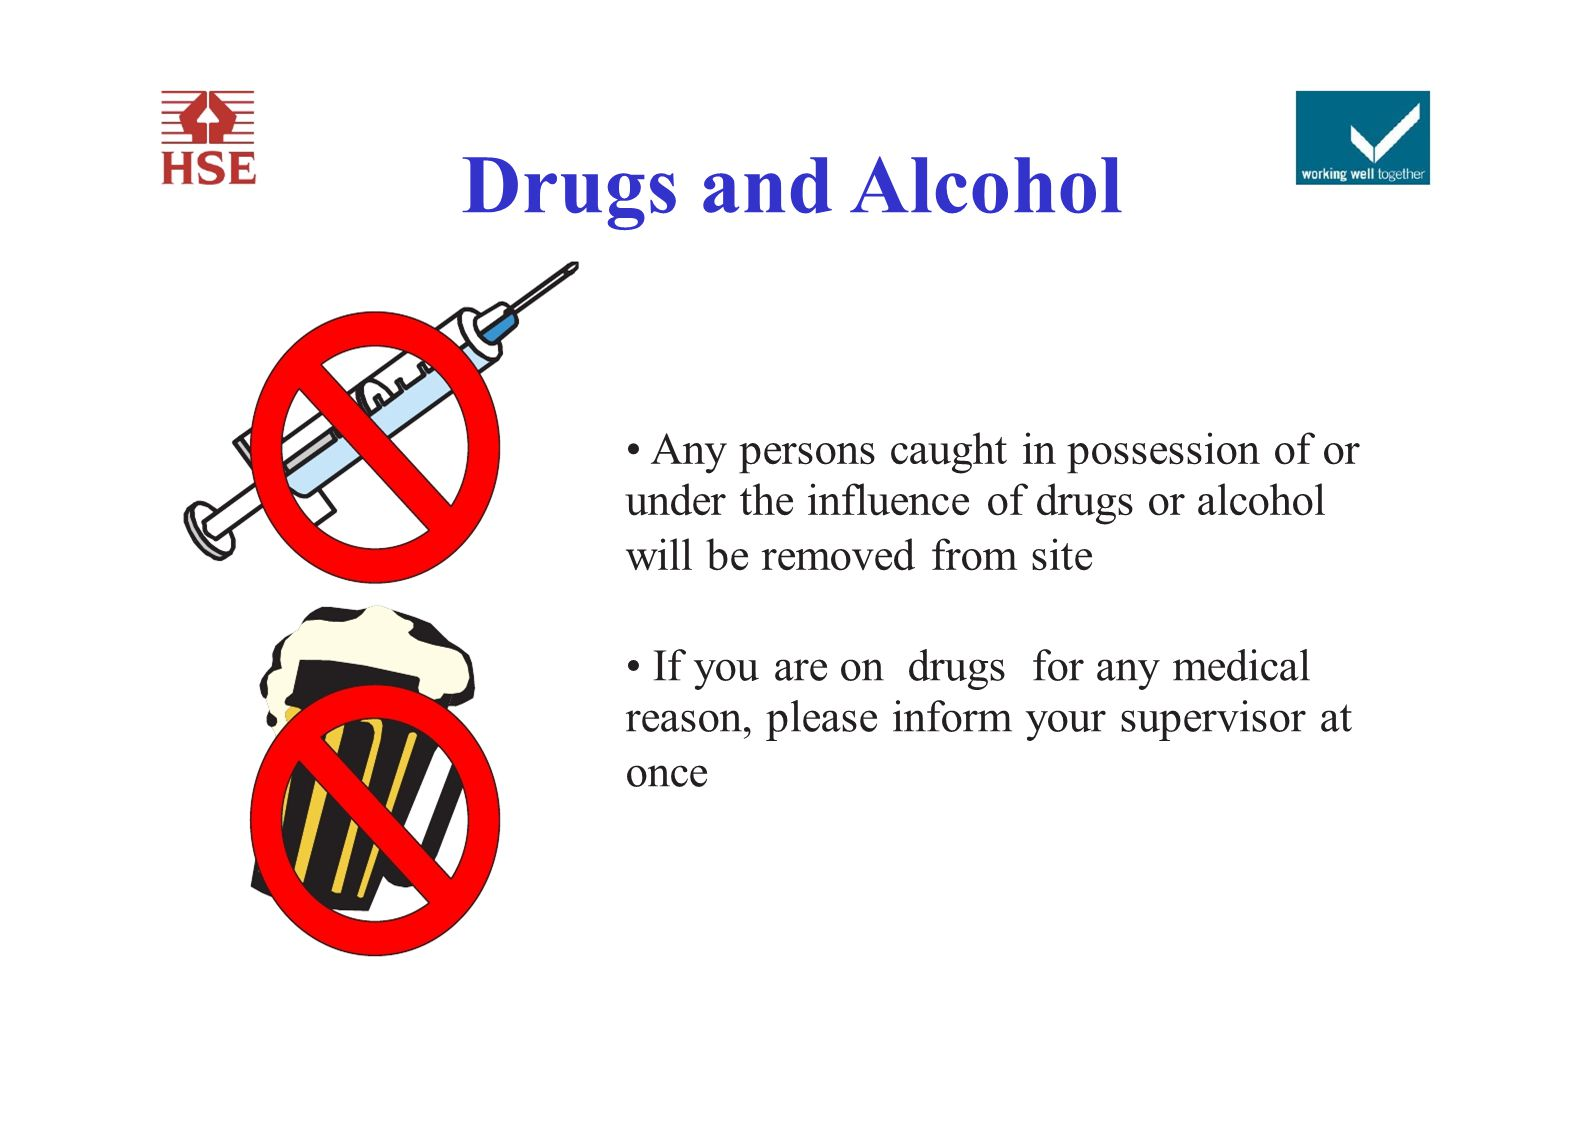 Drugs and Alcohol Any persons caught in possession of or under the influence of drugs or alcohol will be removed from site If you are on drugs for any